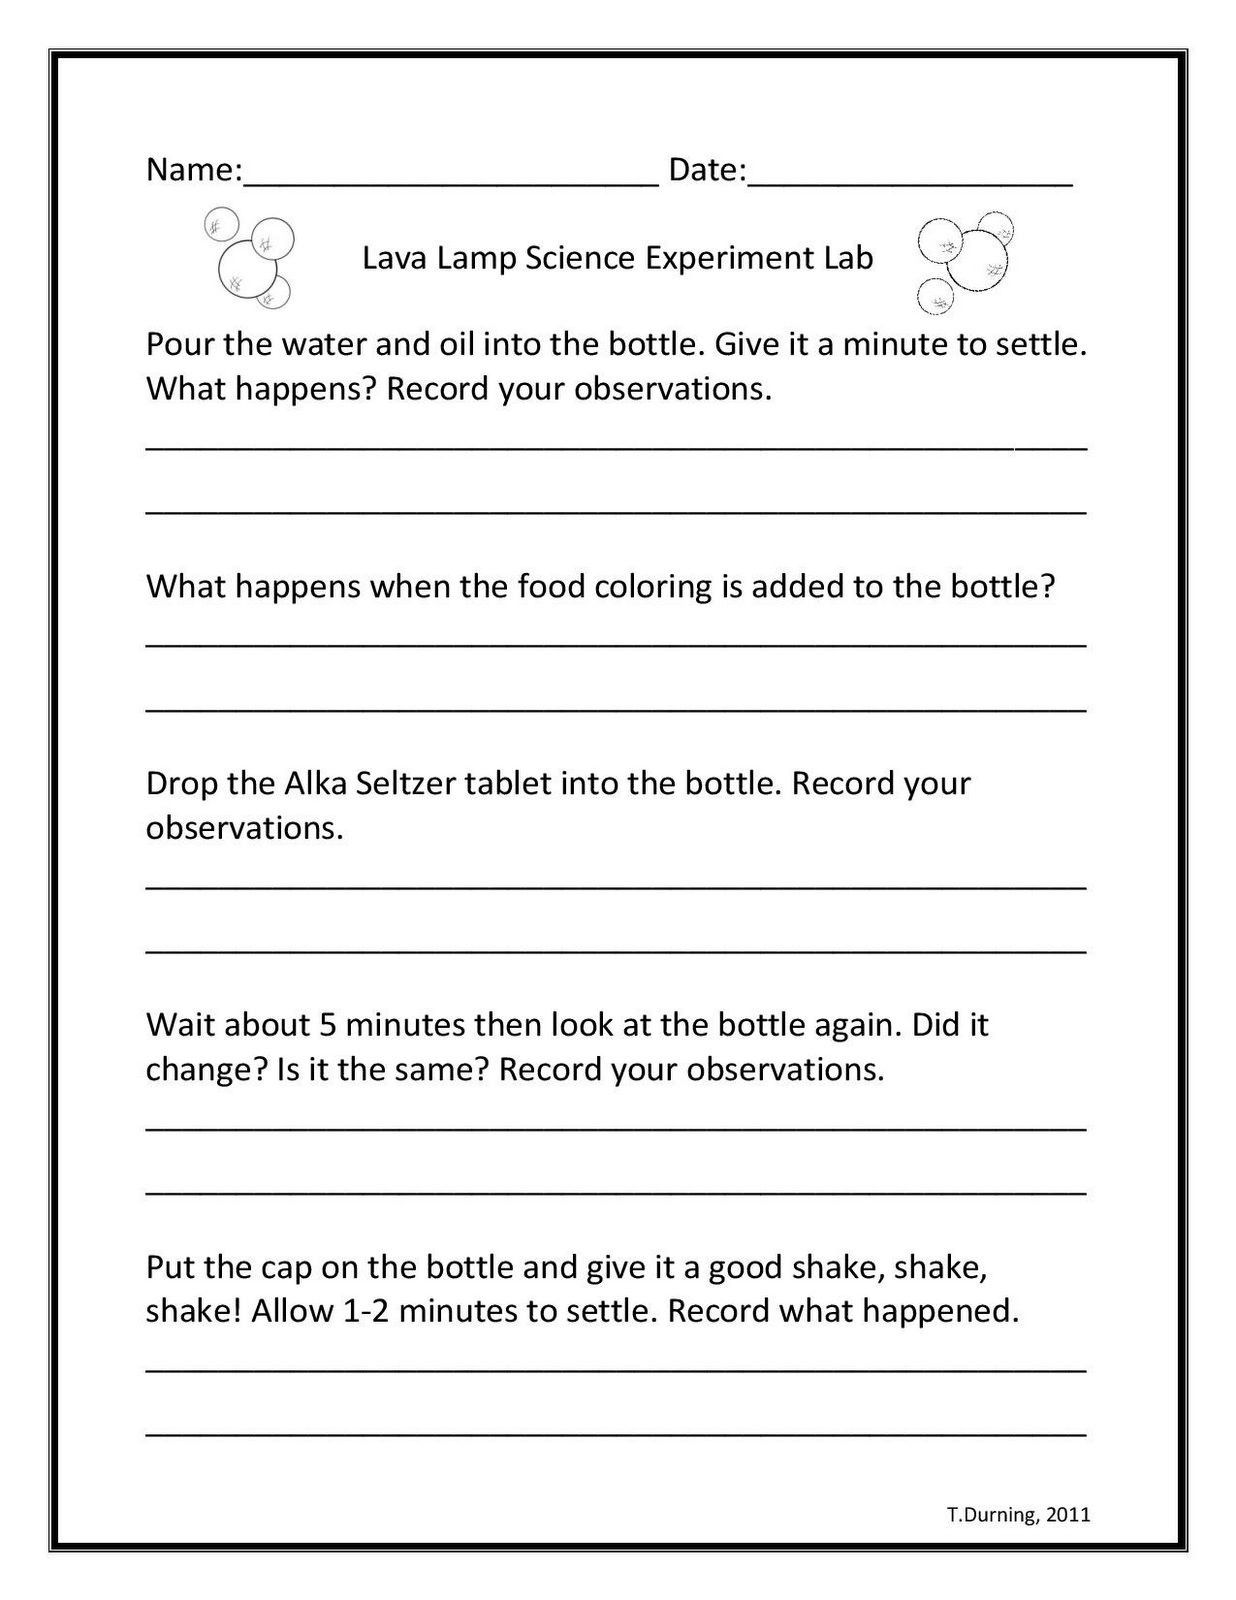 4 Free Math Worksheets Second Grade 2 Telling Time Telling Time 1 Minute Intervals Free Print Science Worksheets Free Math Worksheets Science Experiments